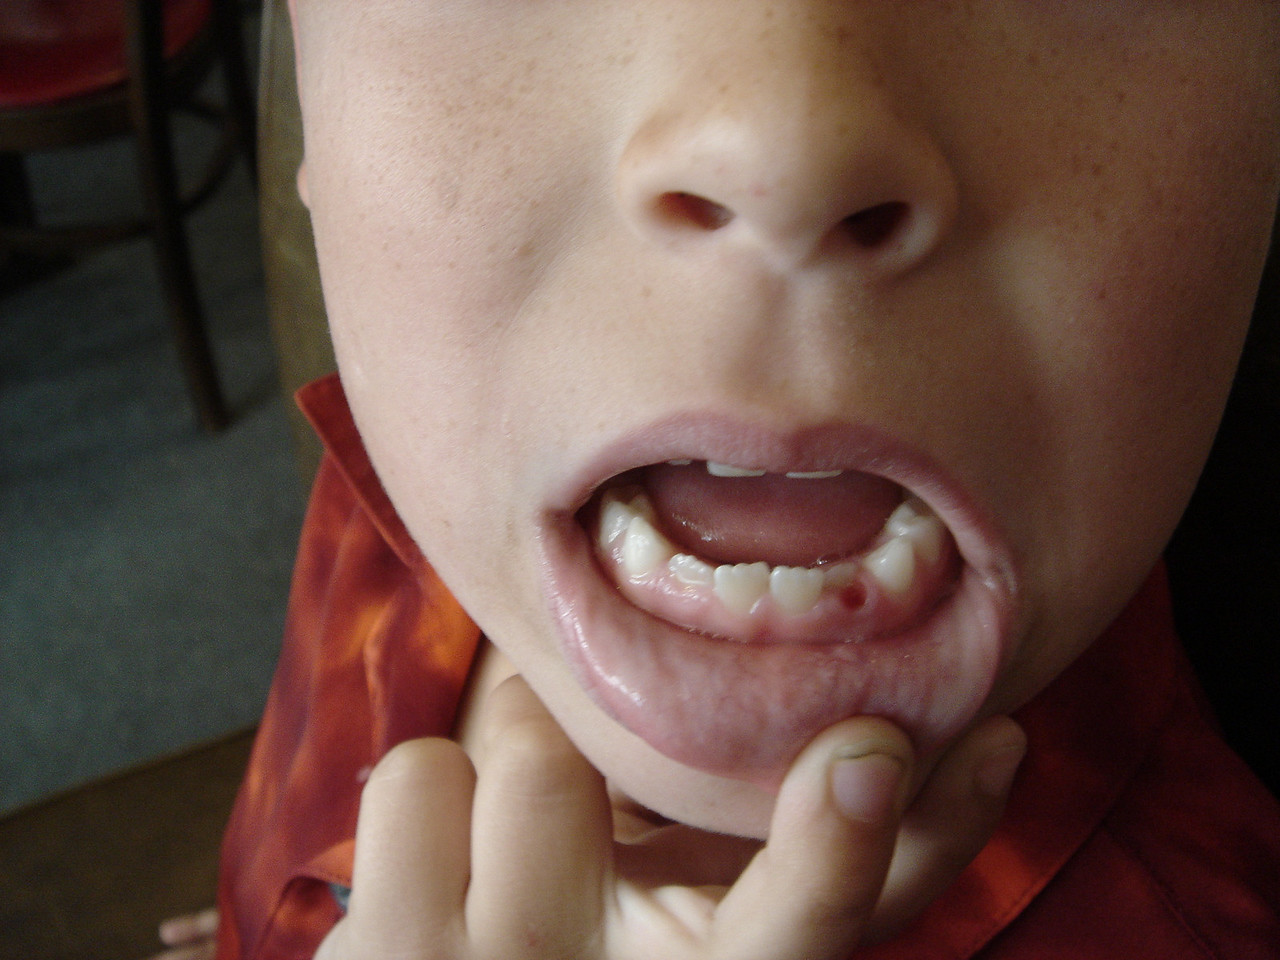 See? No tooth!